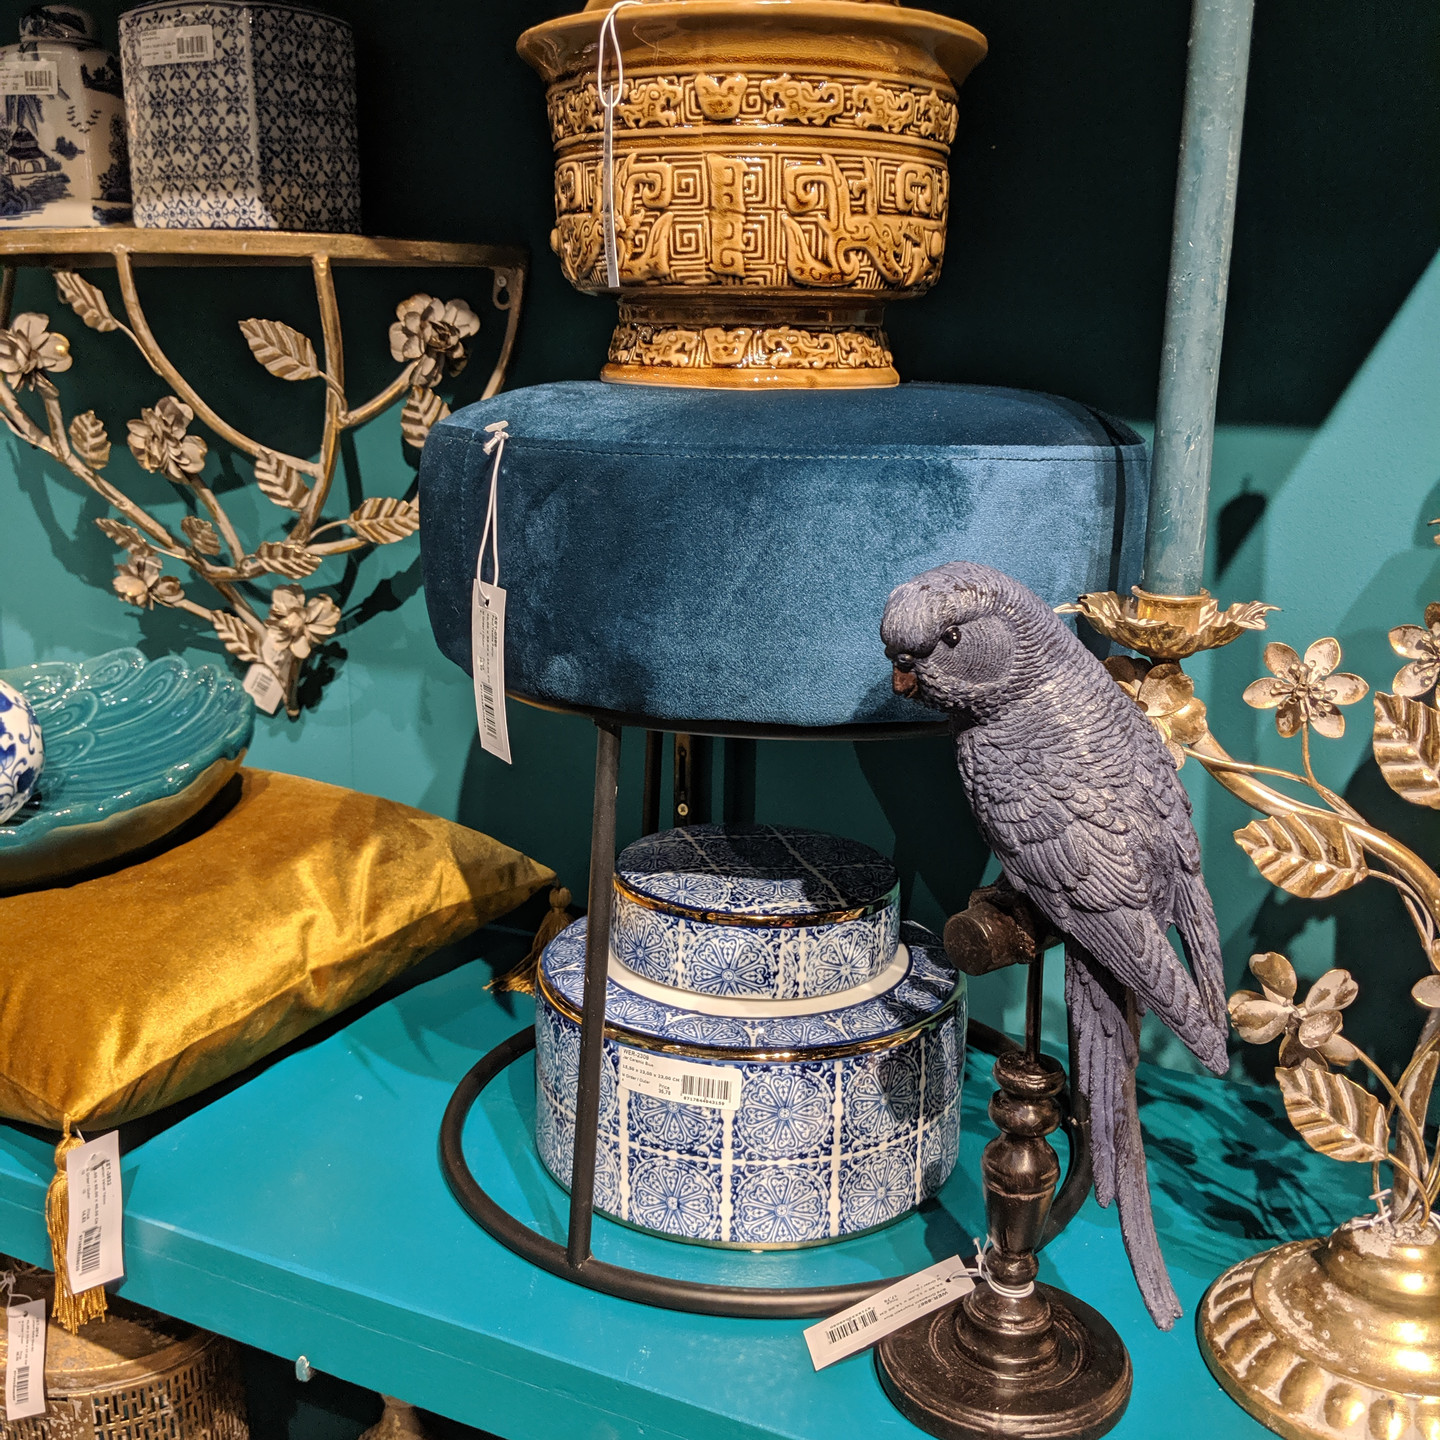 Peacock Blue Home Decor Display with Velvet Stool, Mustard Yellow Velvet Pillow and Carved Parrot Statue